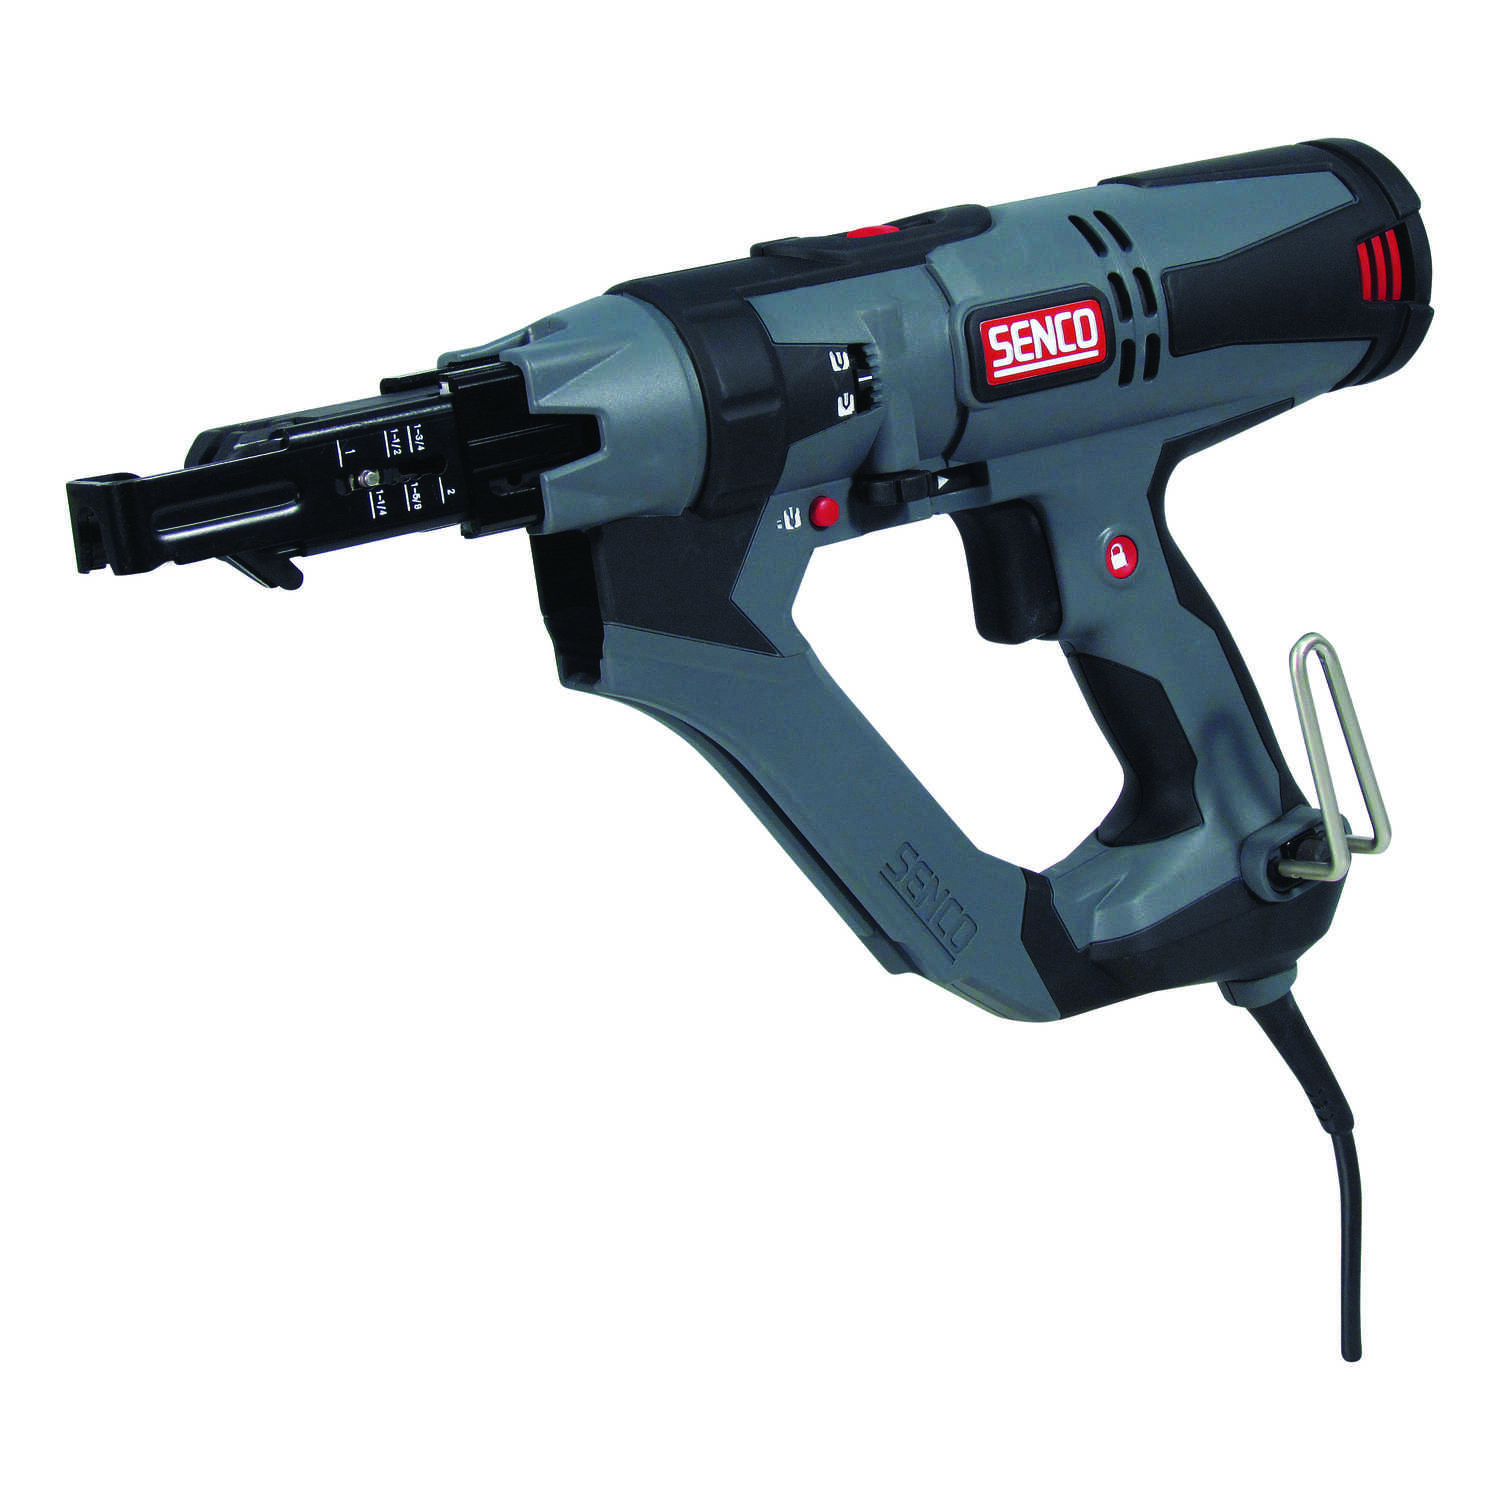 Senco  Duraspin  1  Corded  Electric Screwdriver  120 volt 5000 rpm 1 pc.